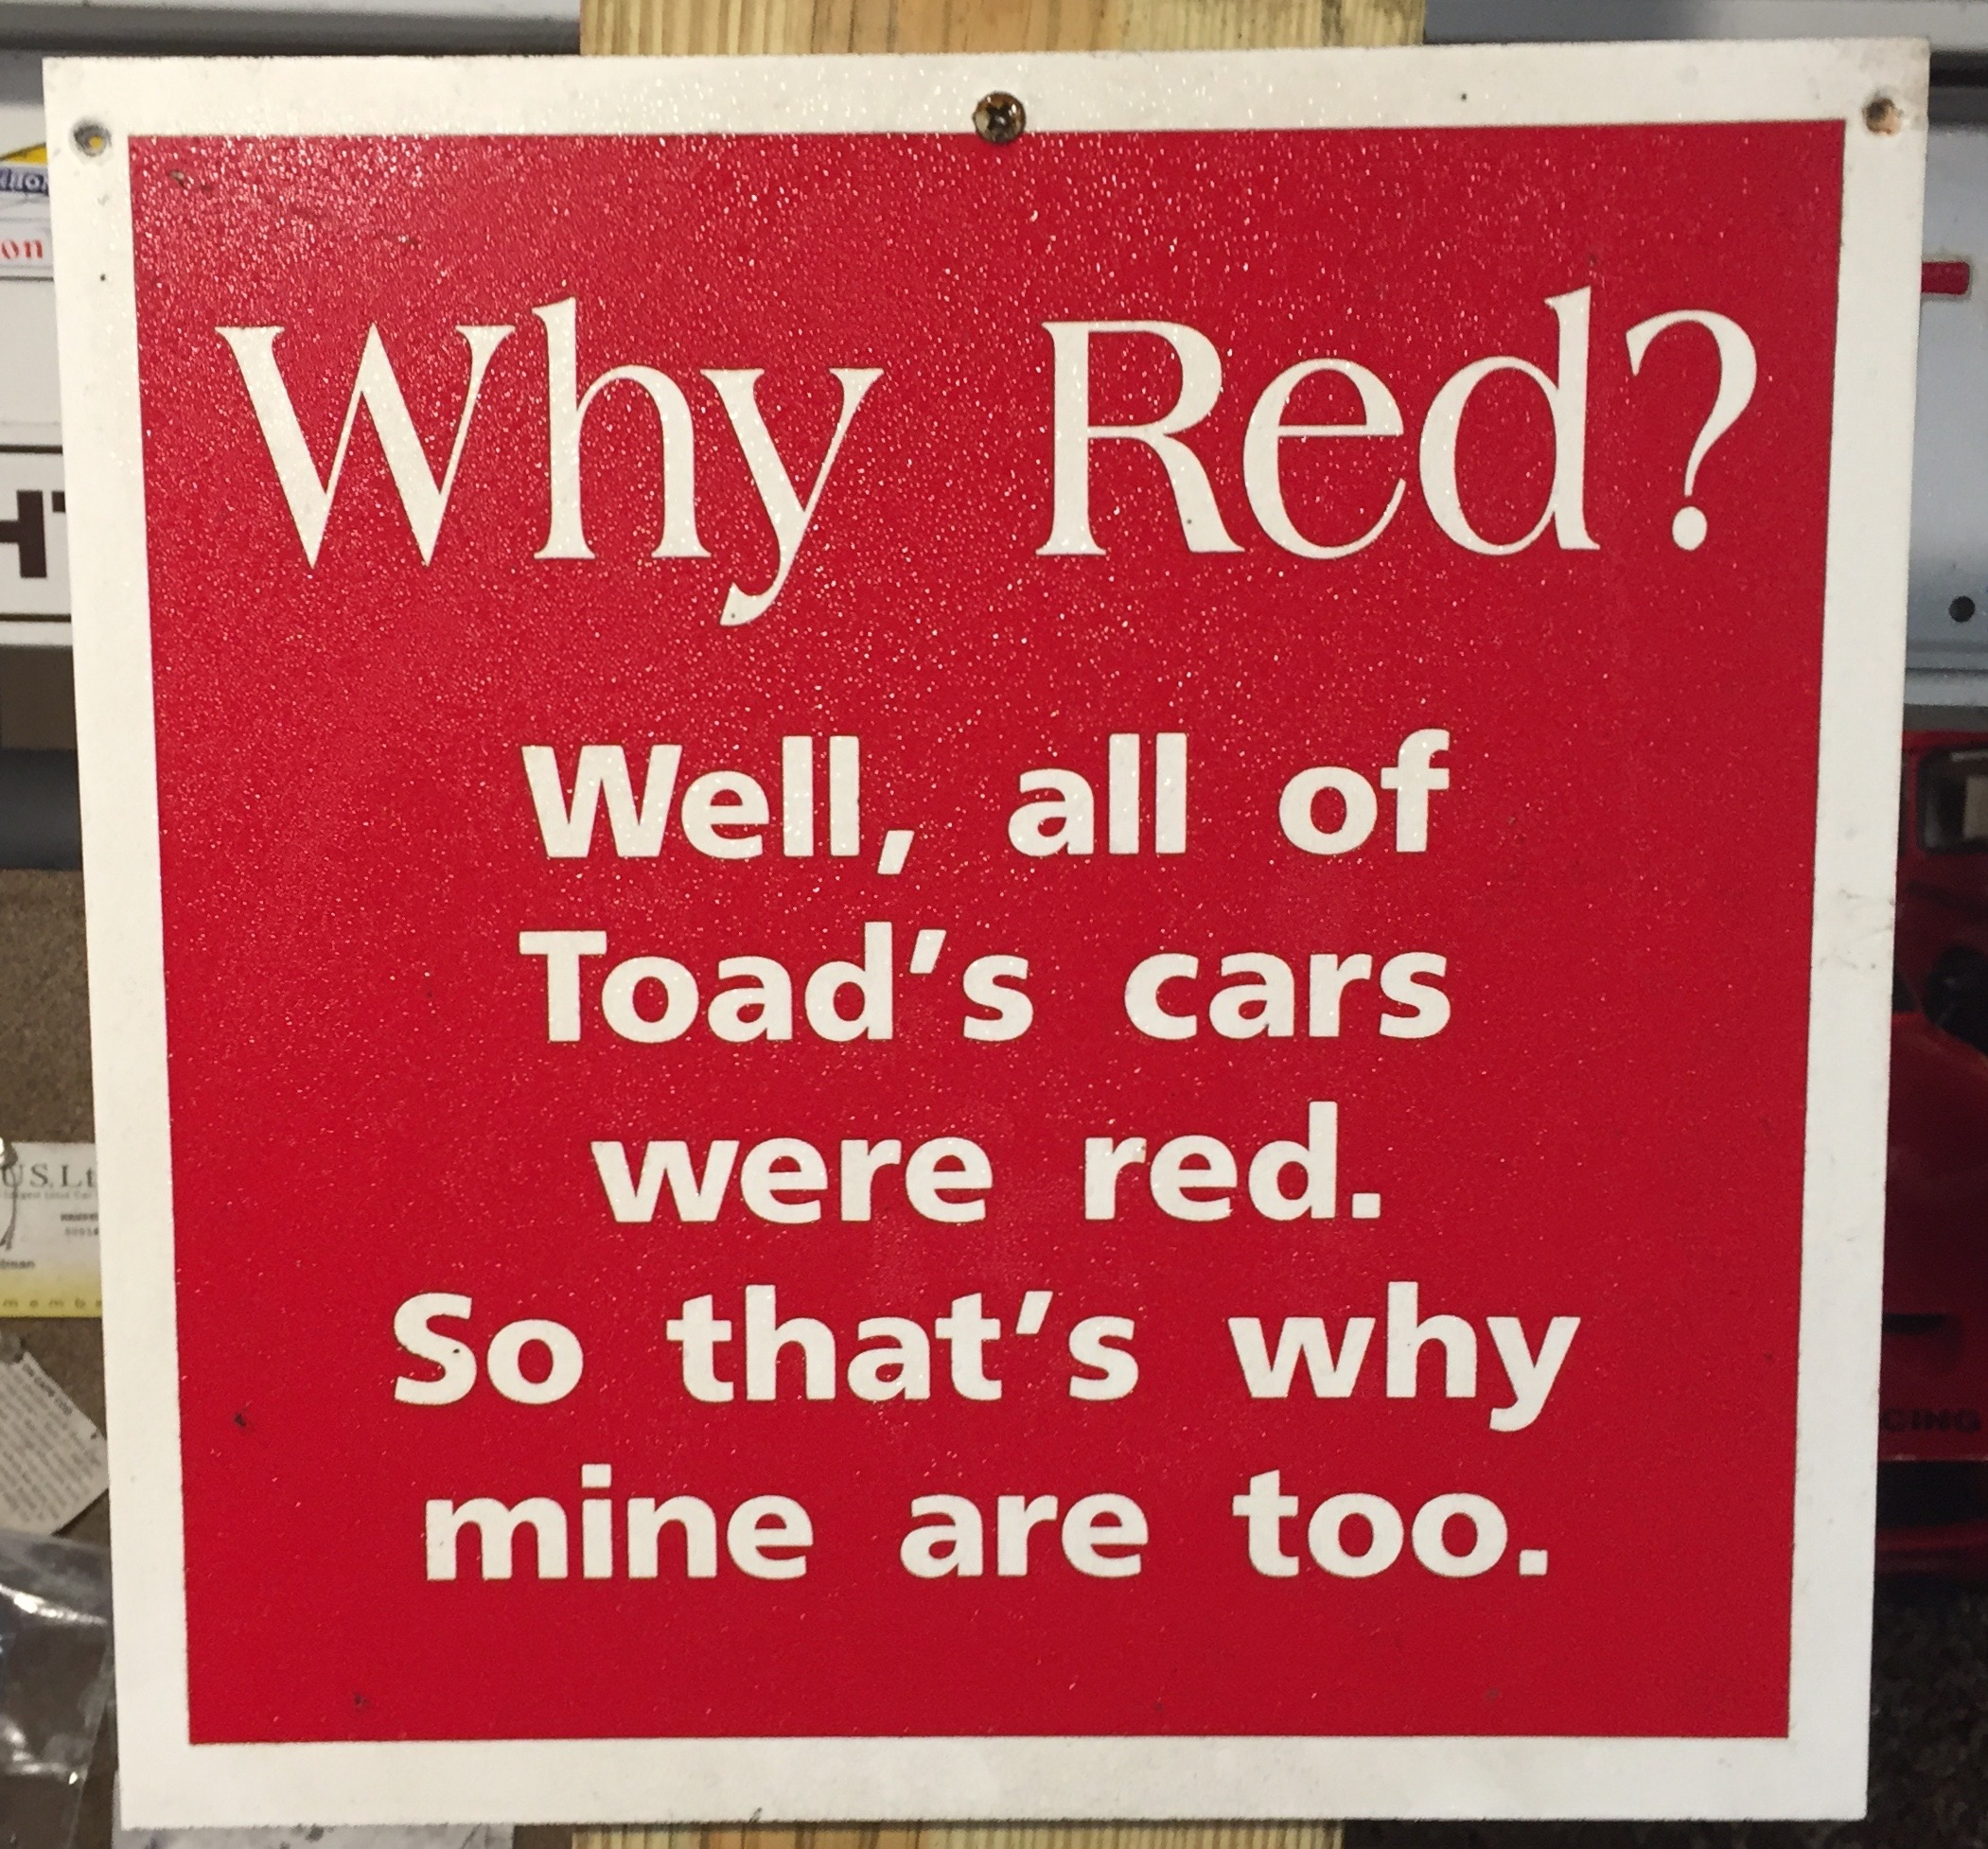 Toad's cars were red